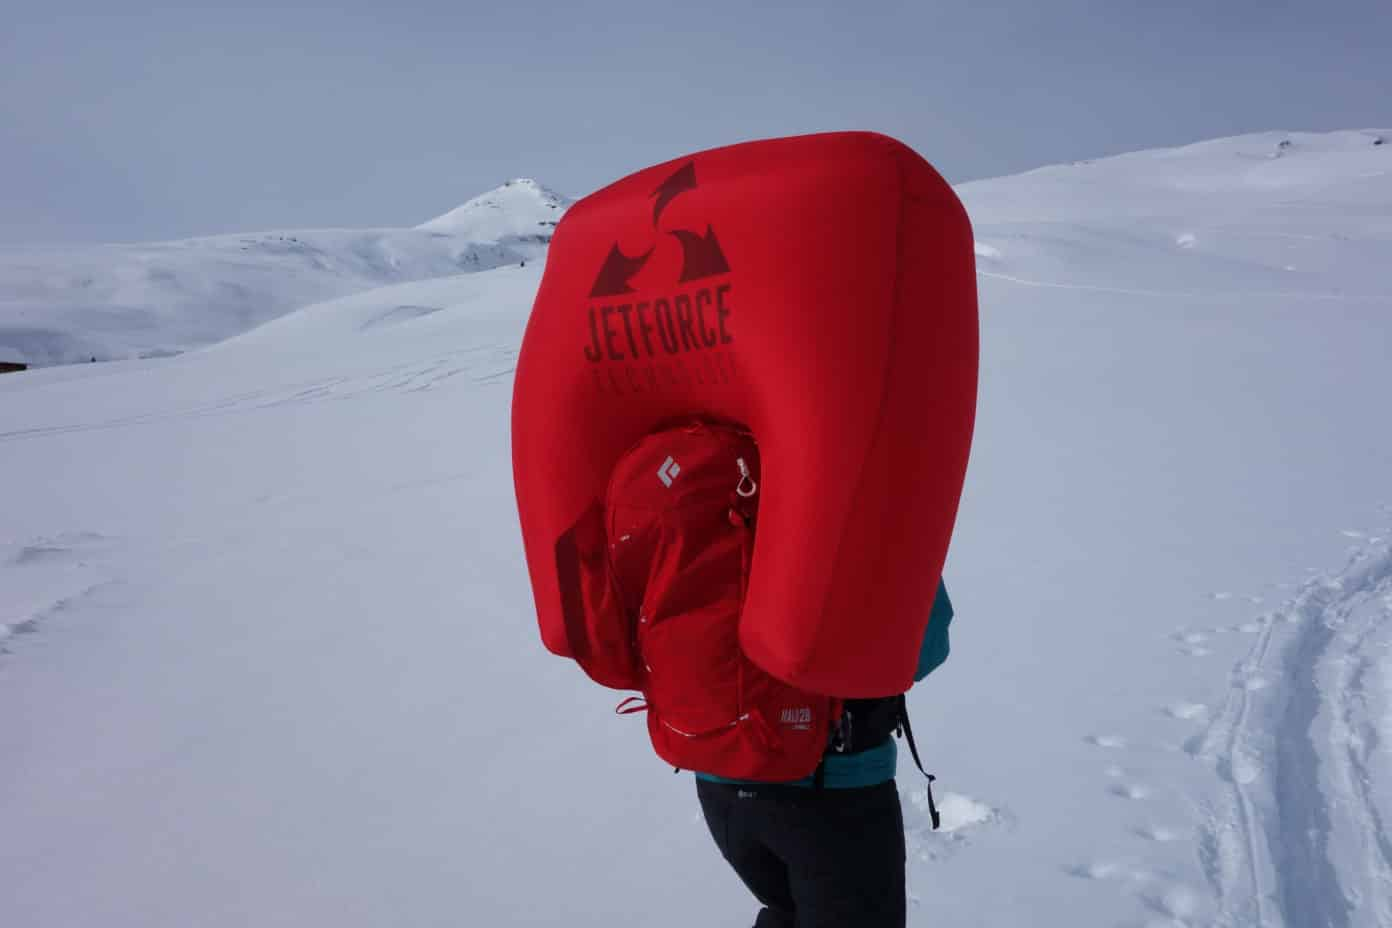 Test Black Diamond Halo 28 Jetforce Avalanche Airbag Pack